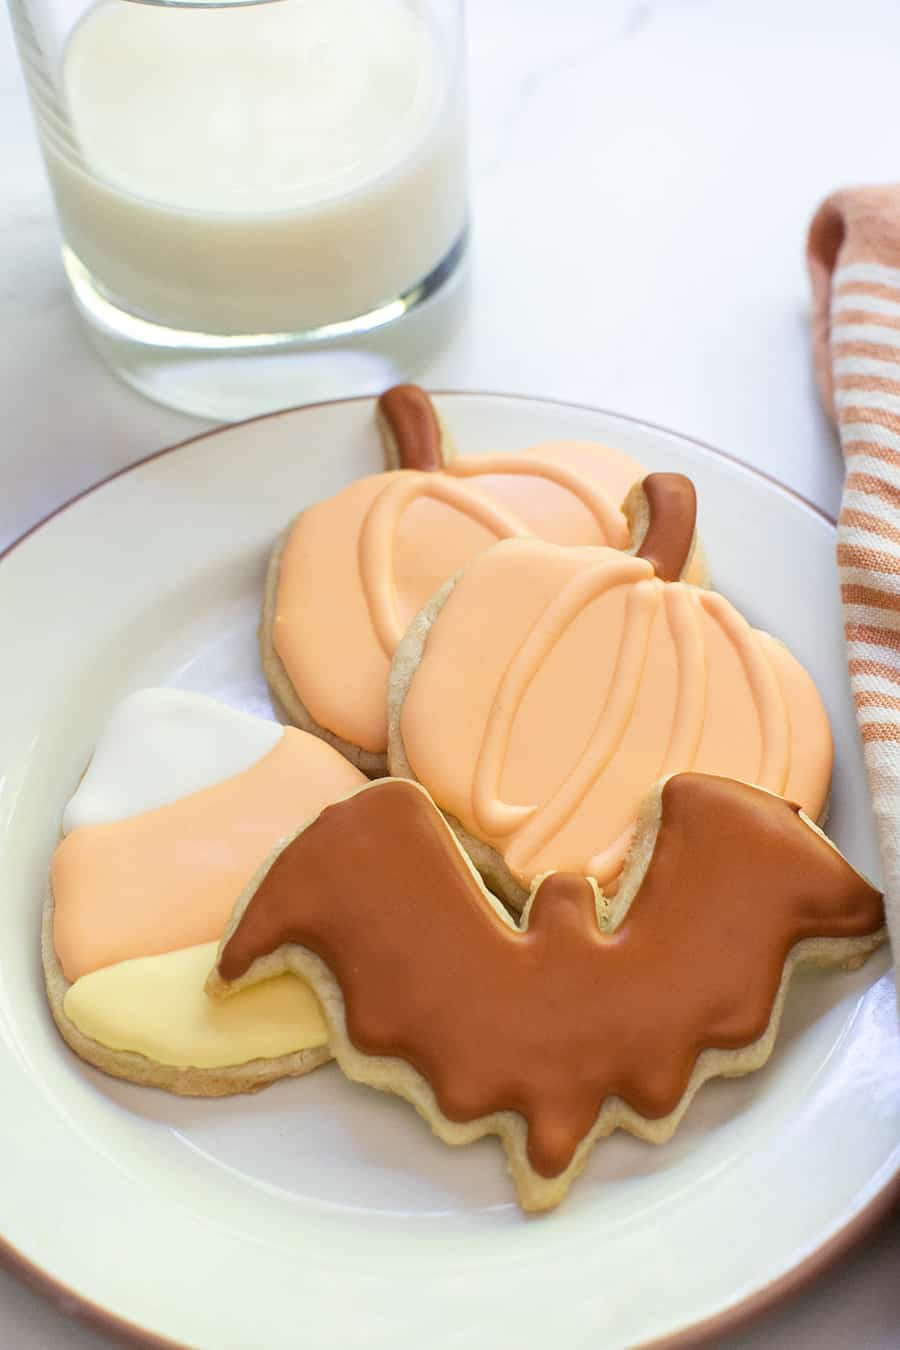 Plate filled with Halloween cookies.